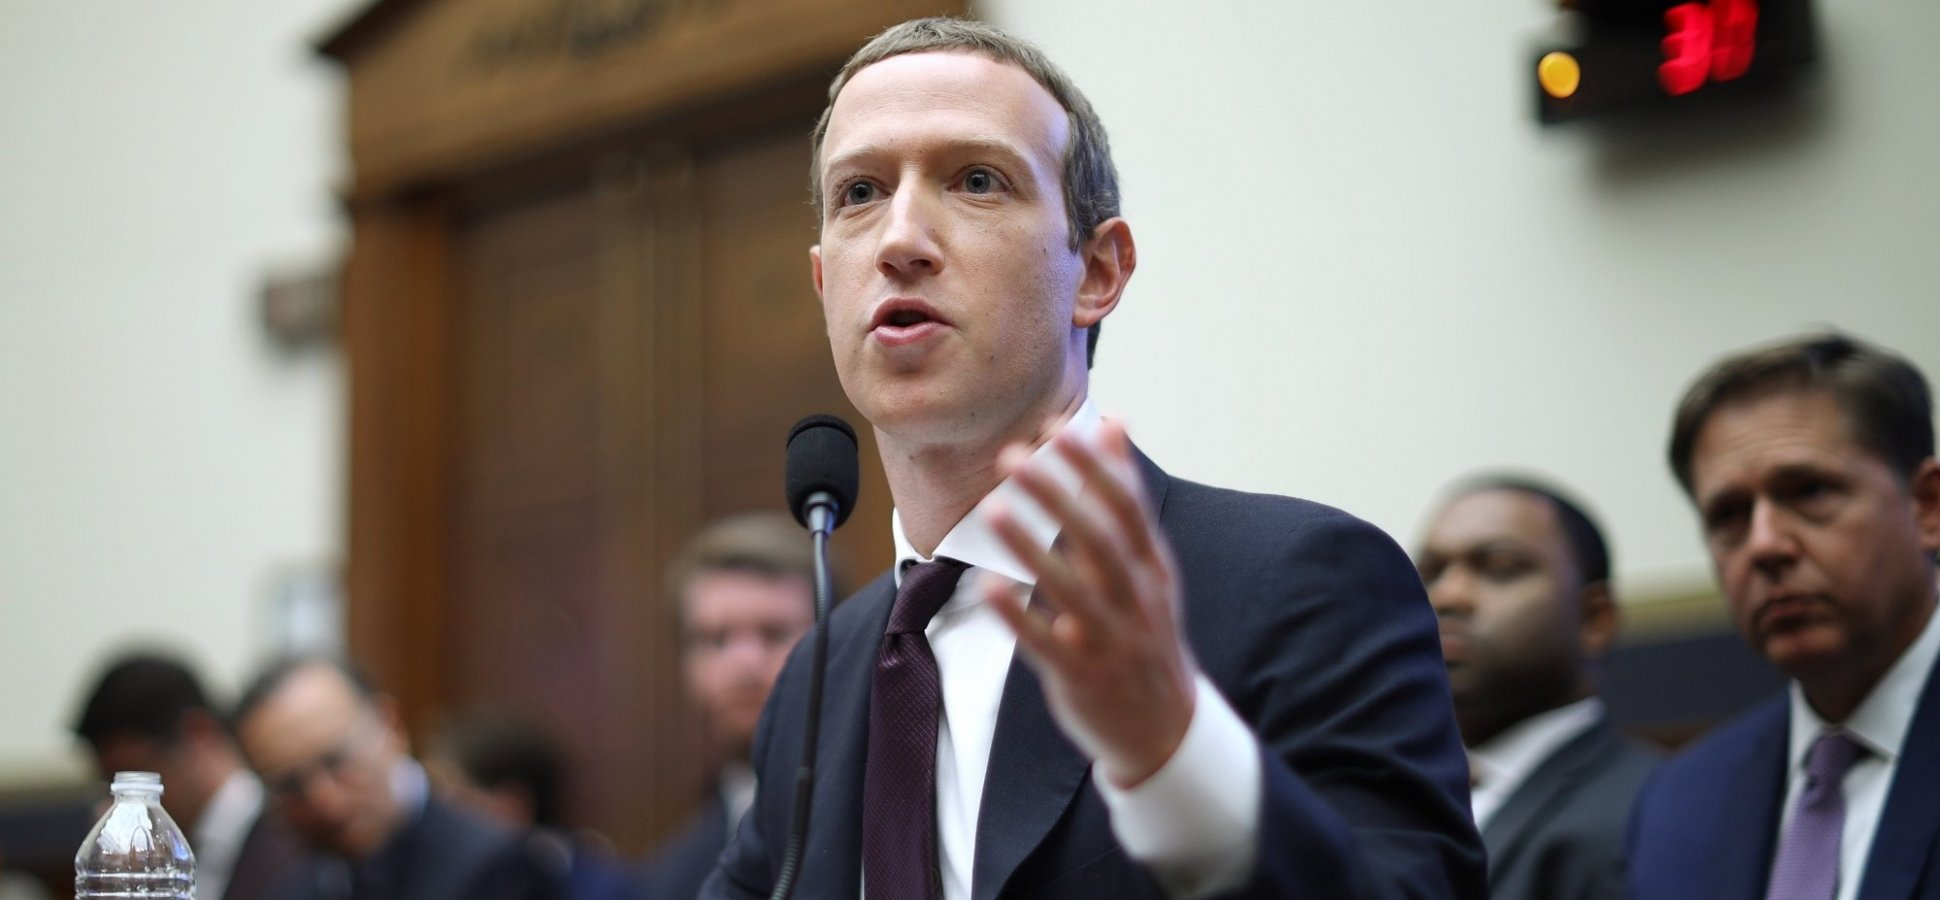 Zuckerberg's Suit at His Congressional Hearing Is a Reminder That What You Wear Matters